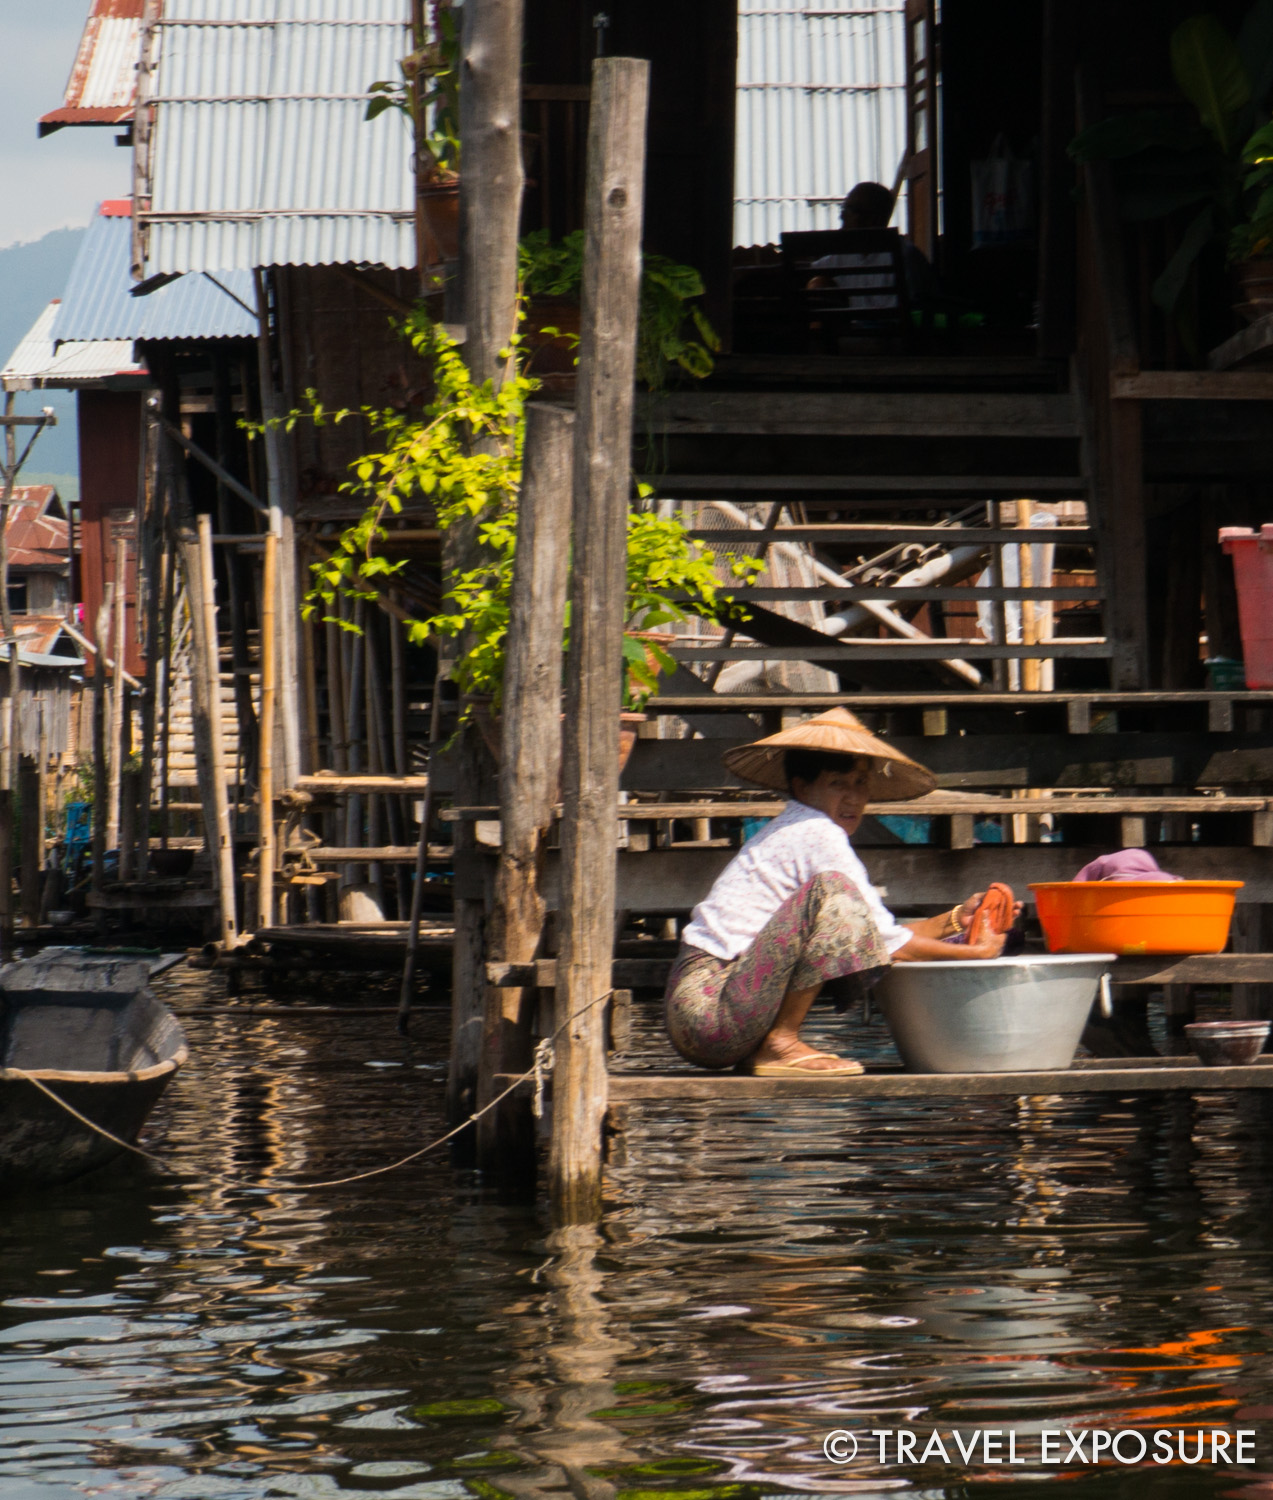 A woman washes clothes outside her house in Inle Lake, Myanmar